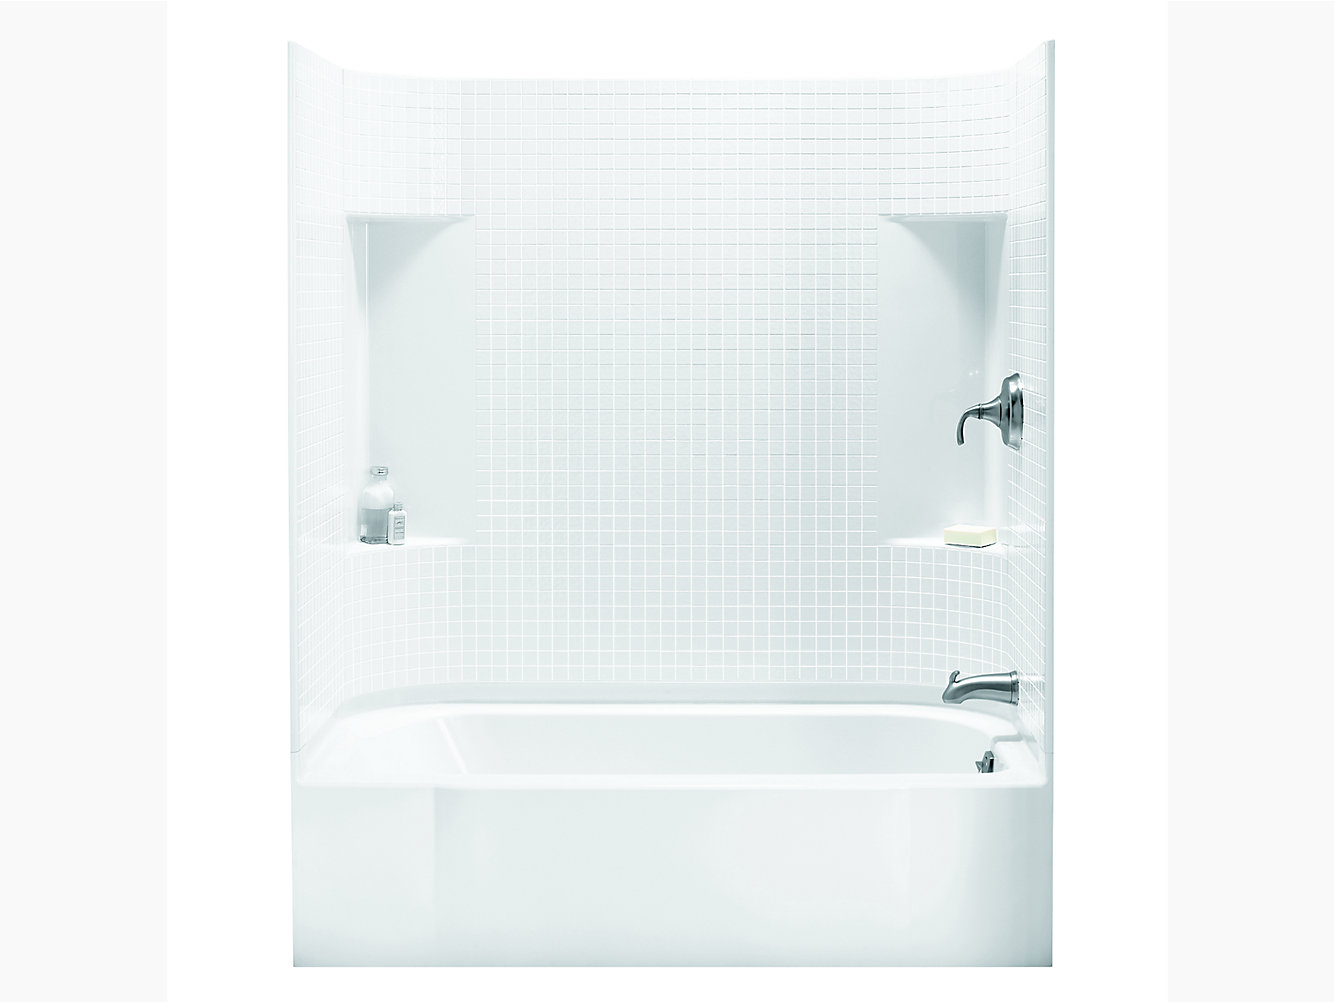 "Accord Series 7114, 60"" x 30"" Bath/Shower With Above-Floor Drain ..."